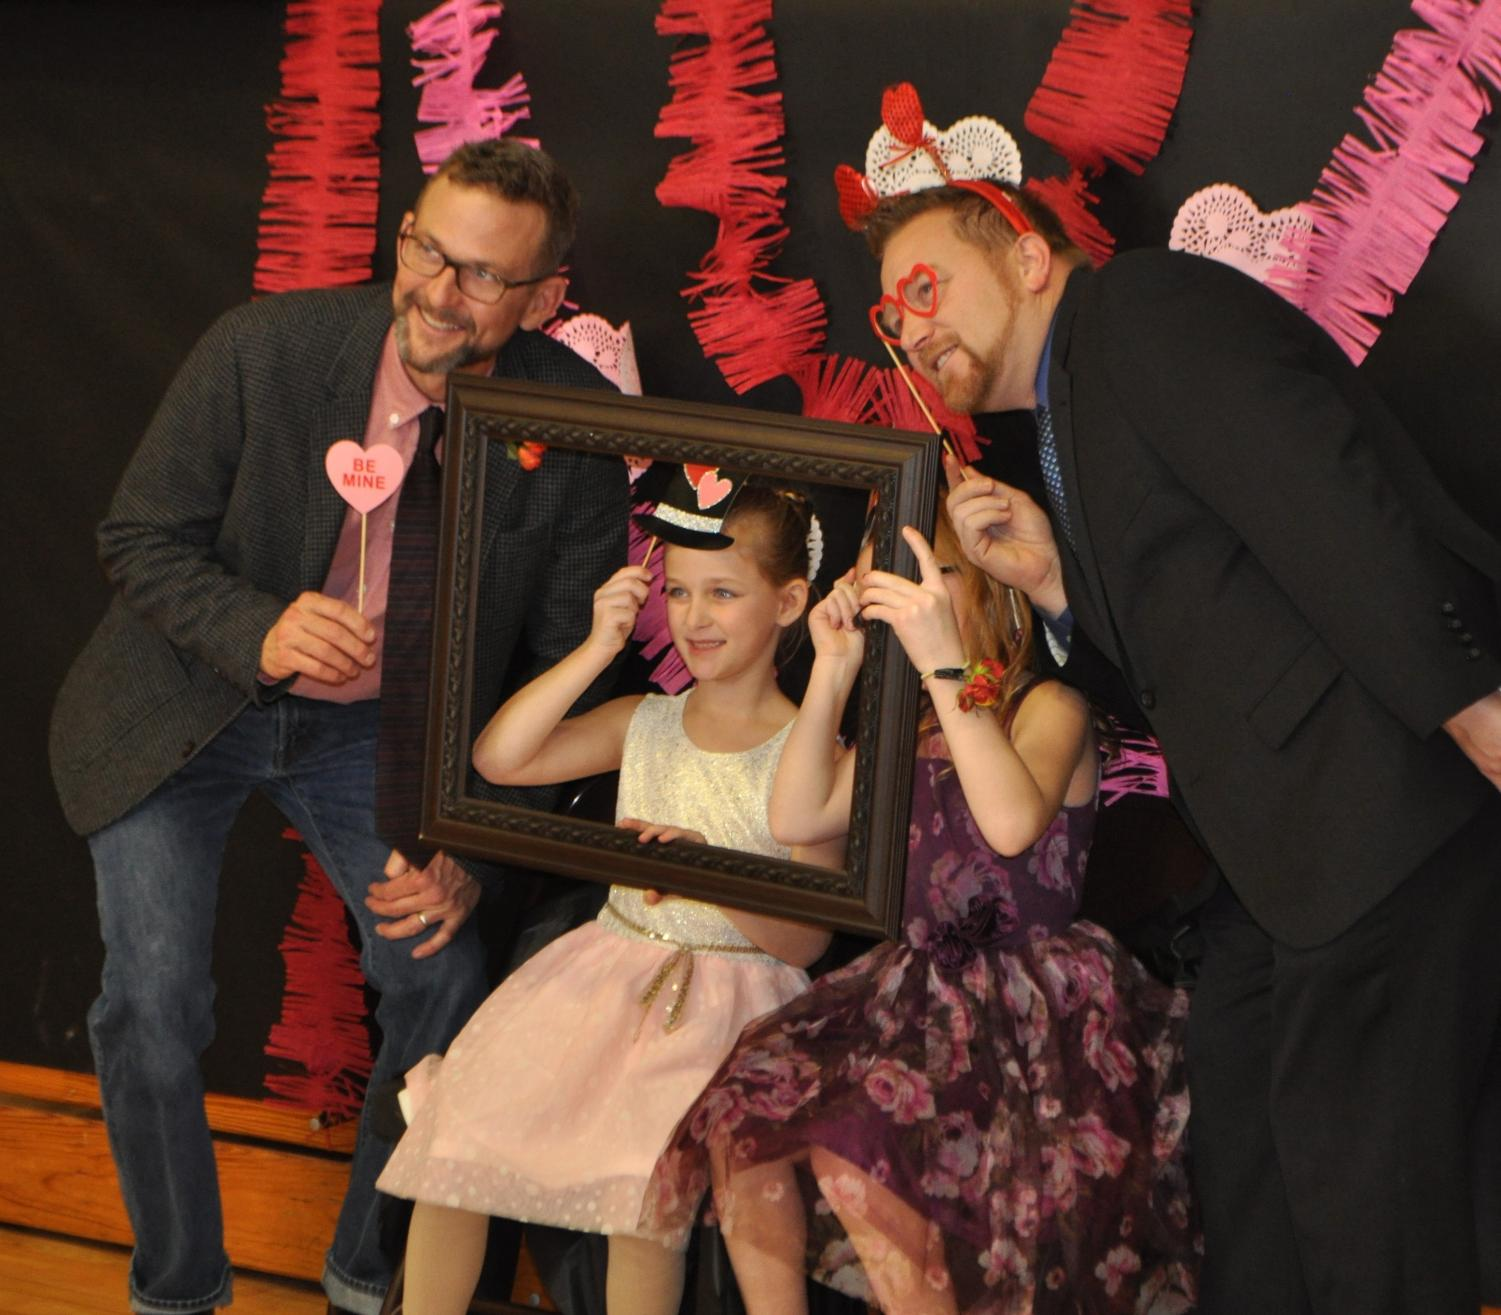 Fathers and daughters play dress up at the photo booth. This shows one of the activities at the dance, the photo booth. Families can dress up and take a silly photo by professional photographers.